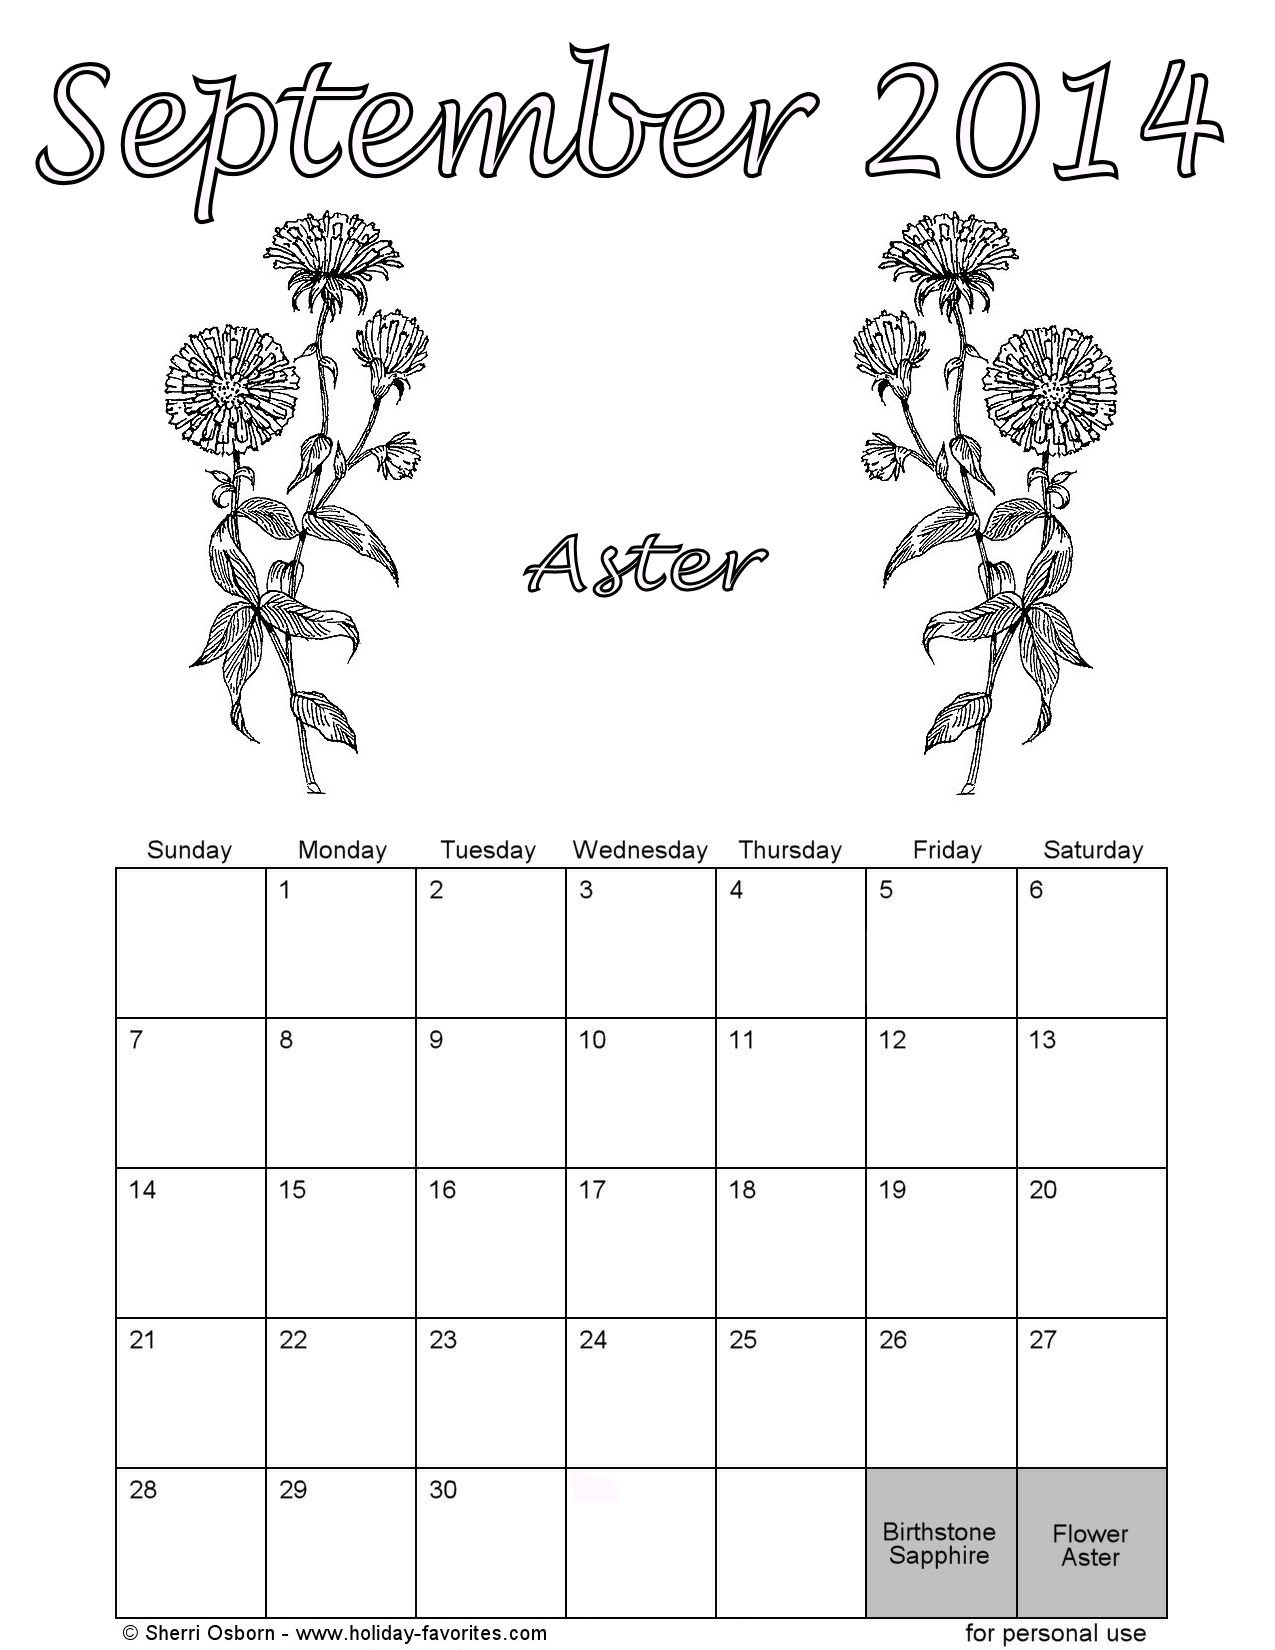 coloring pages calendar - printable september 2014 calendars holiday favorites